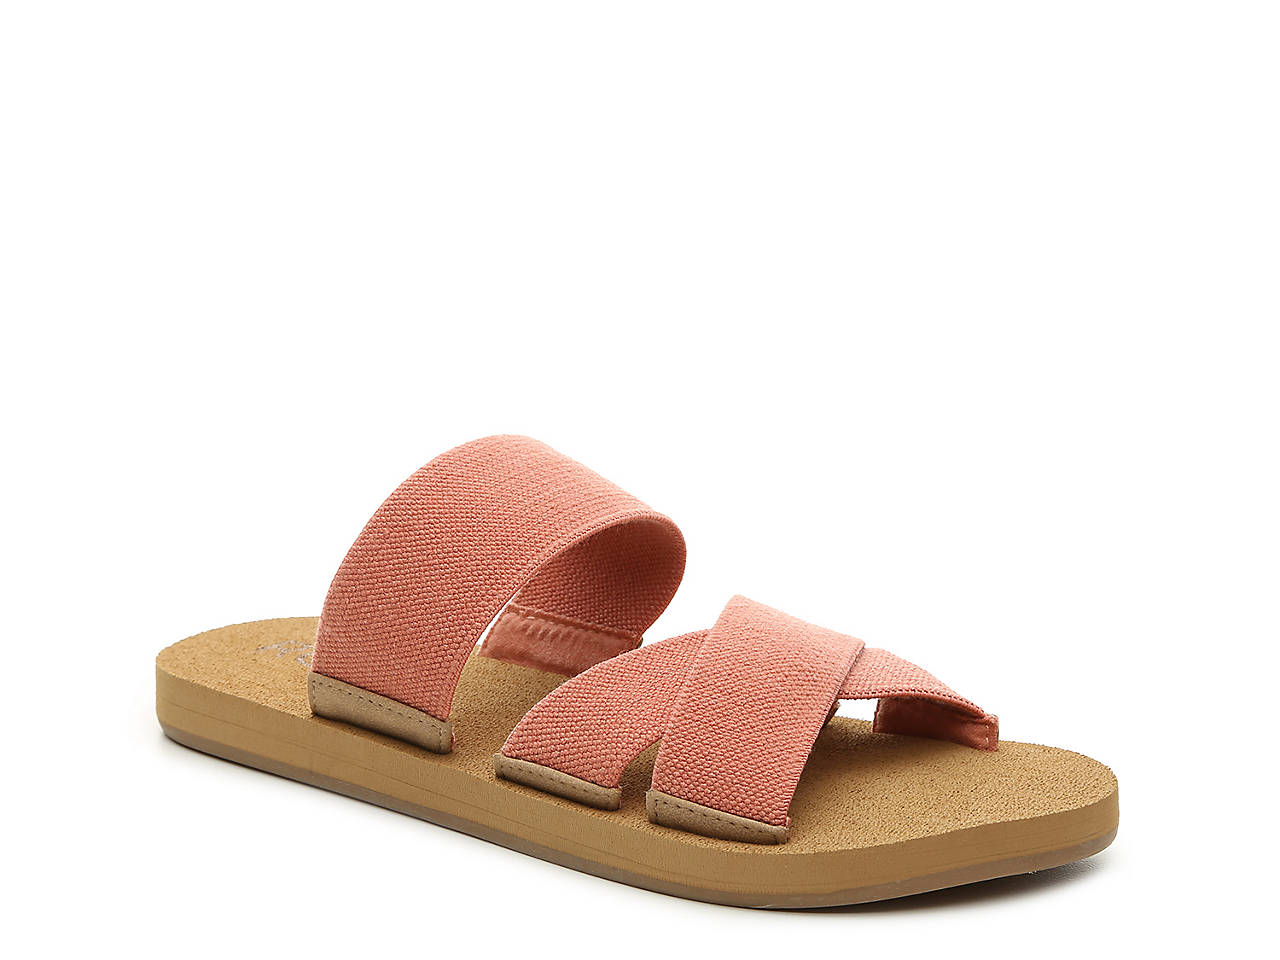 Roxy Shoreside Sandals Women's Shoes TmGAouek